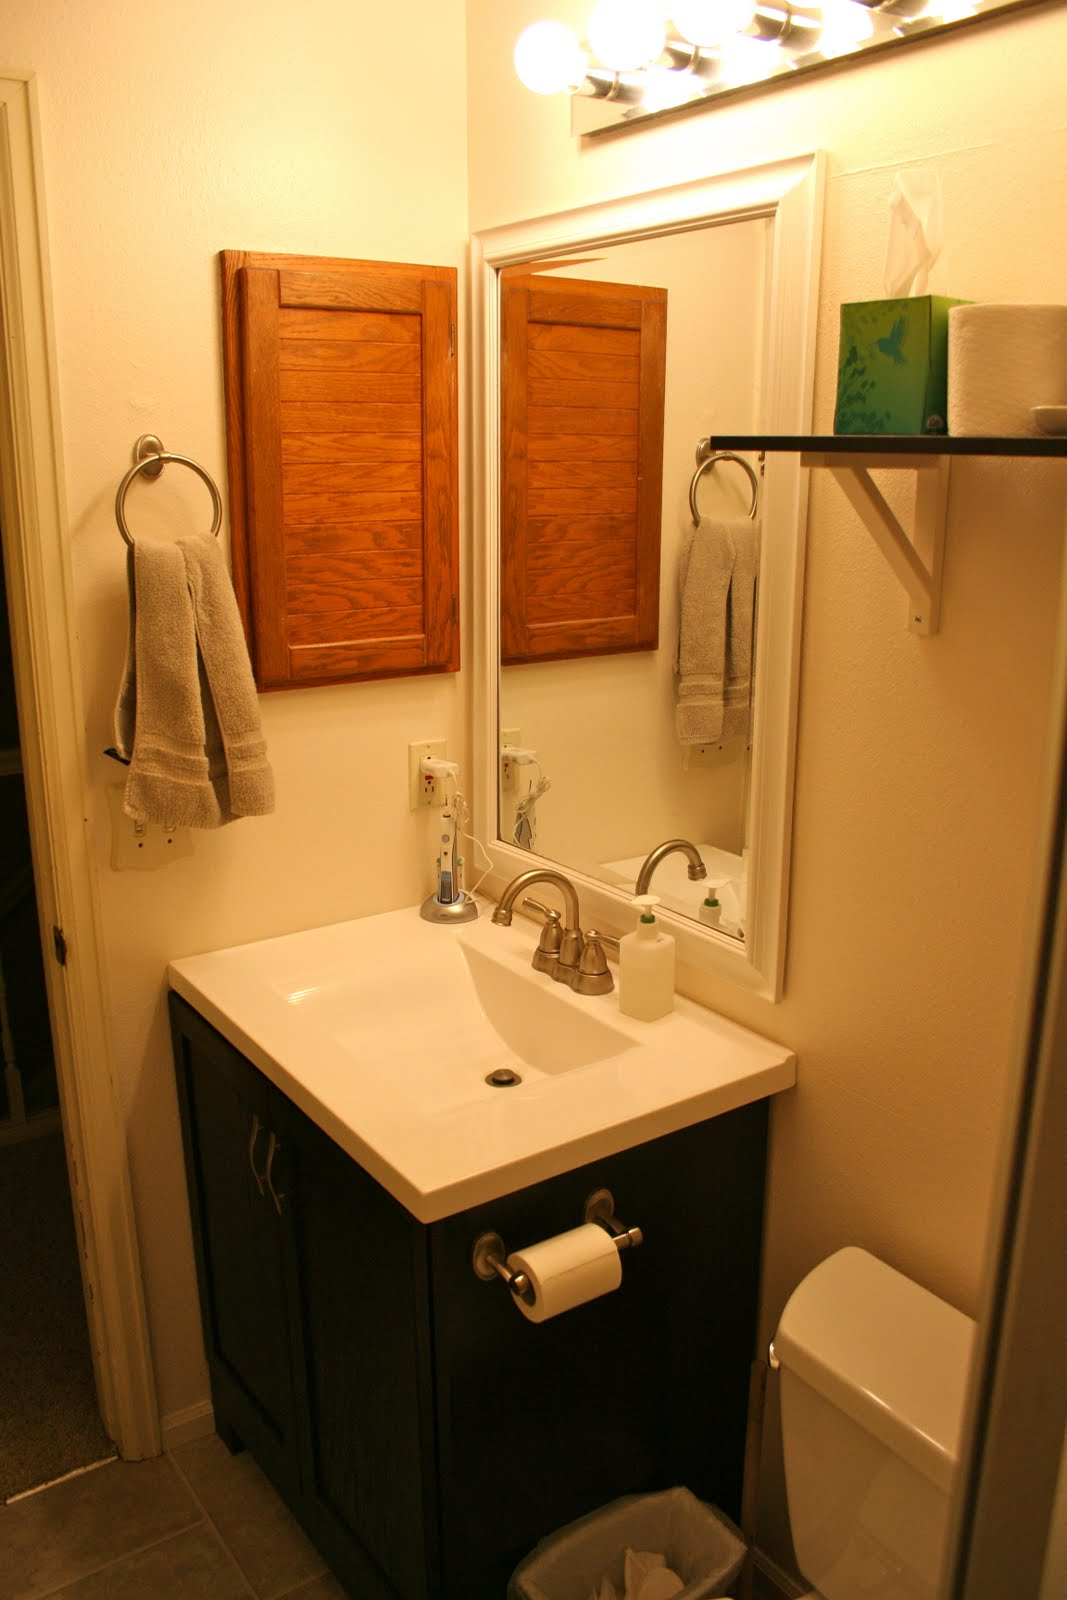 Things We Swear Happened Diy Bathroom Remodel